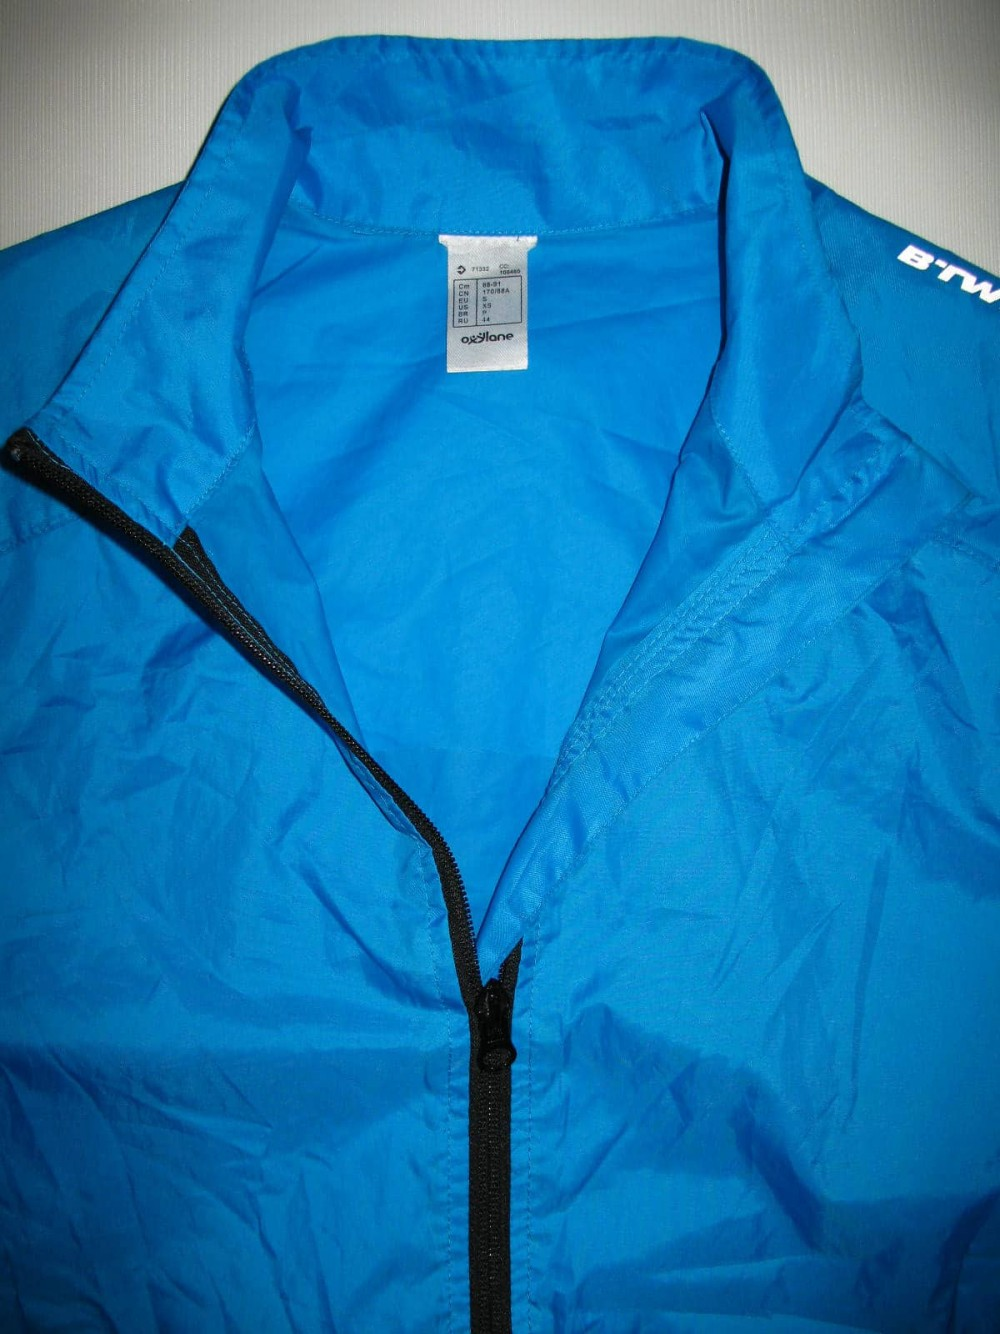 Куртка B'TWIN 300 waterproof cycling jacket (размер S/M) - 5